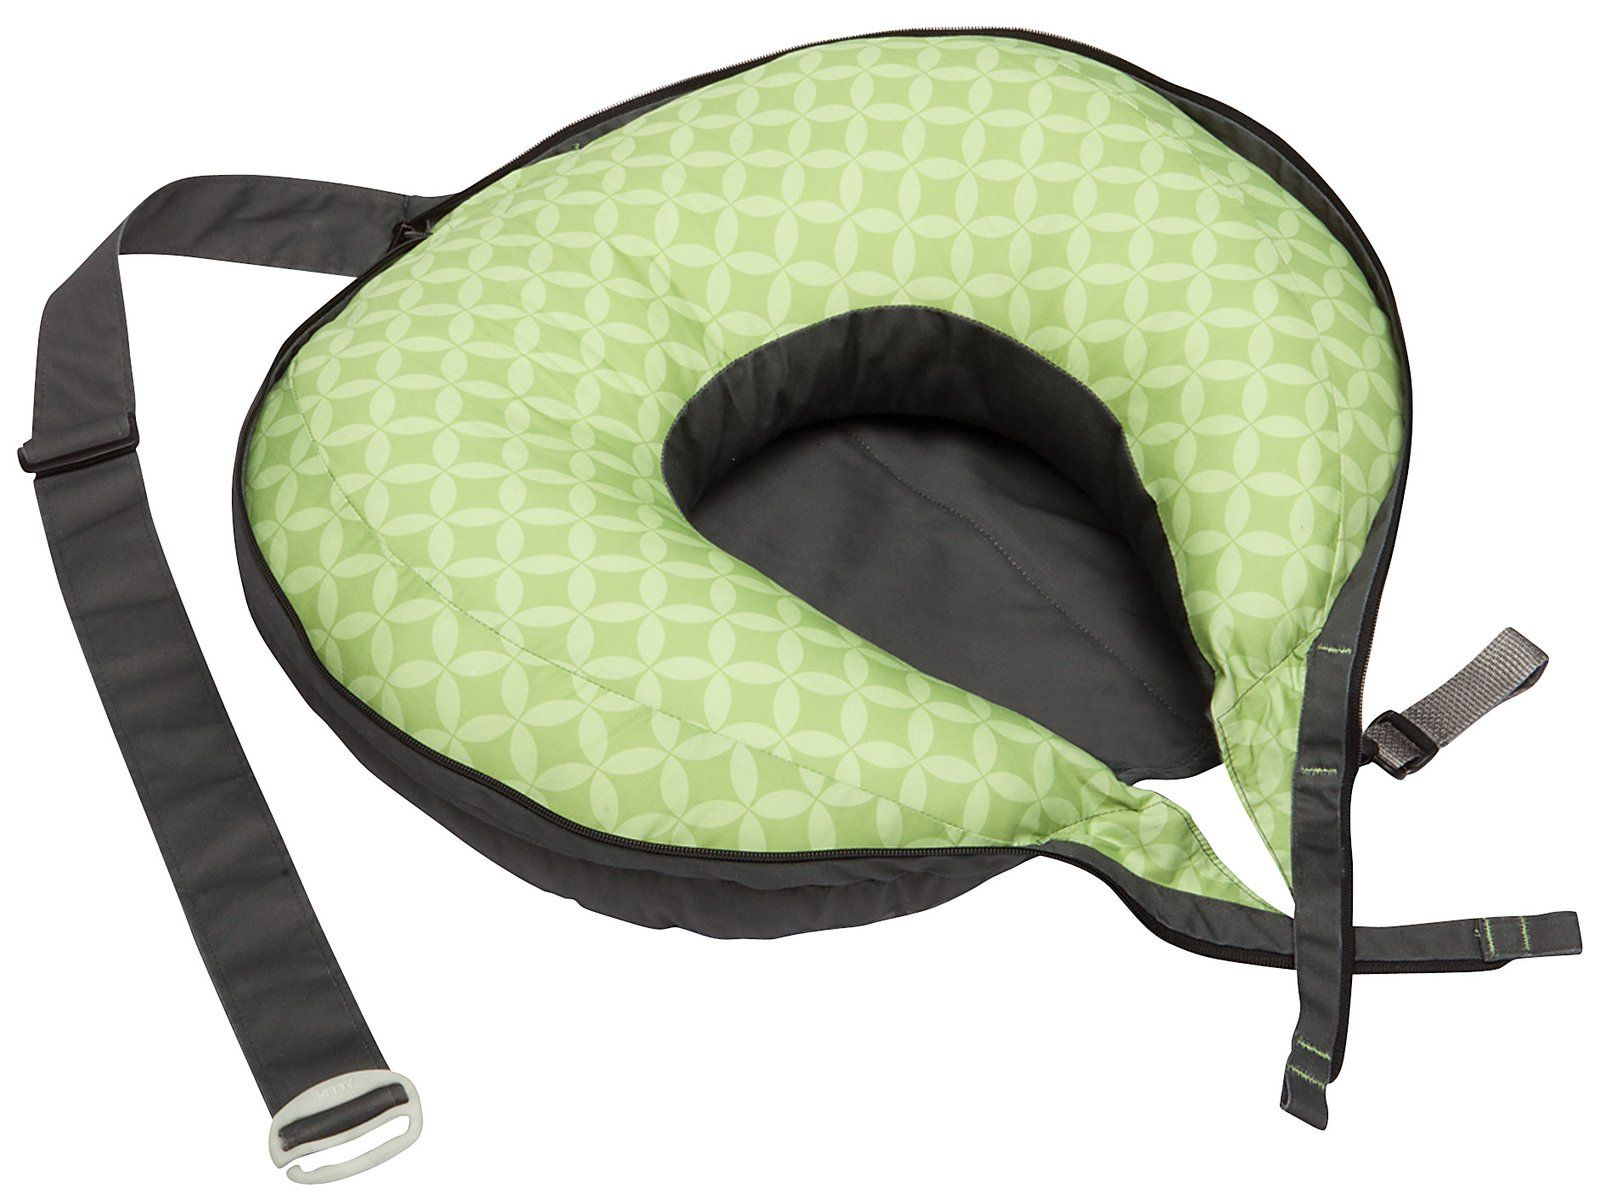 Boppy Travel Pillow Great For On The Go Folds Up To